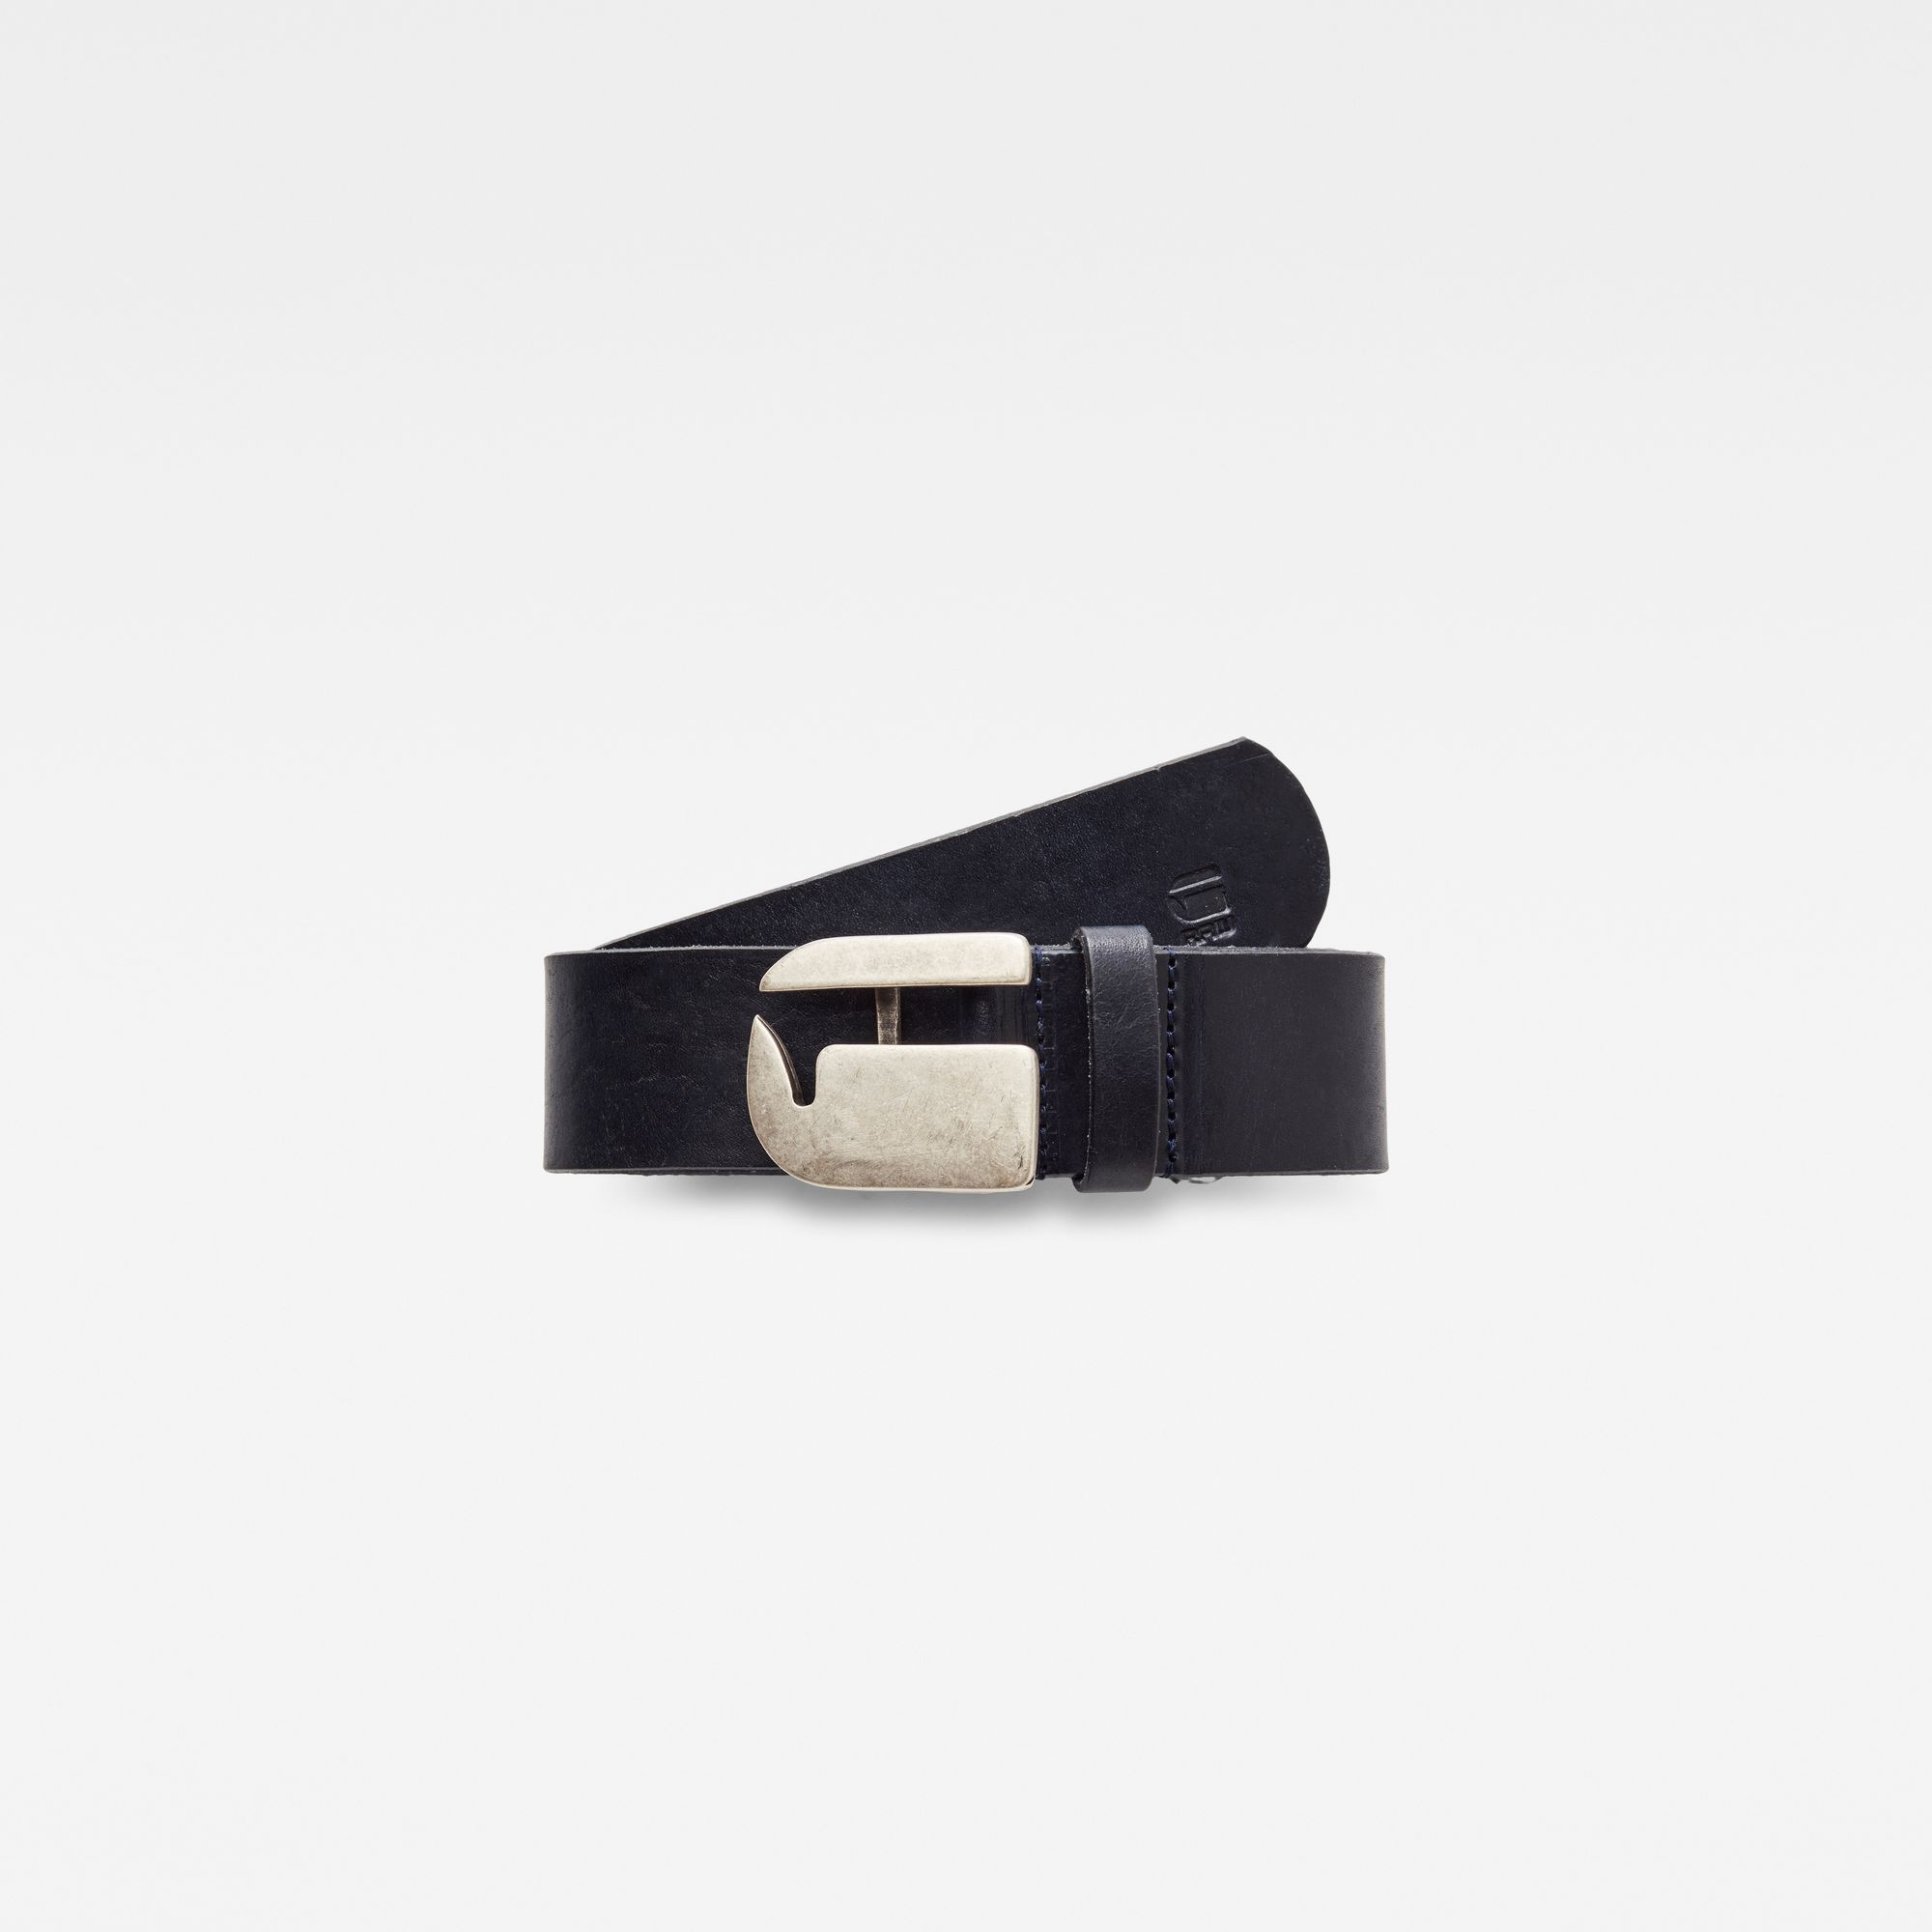 Rikku Logo Pin Belt   G-STAR RAW   Pinterest 90d11cbb318